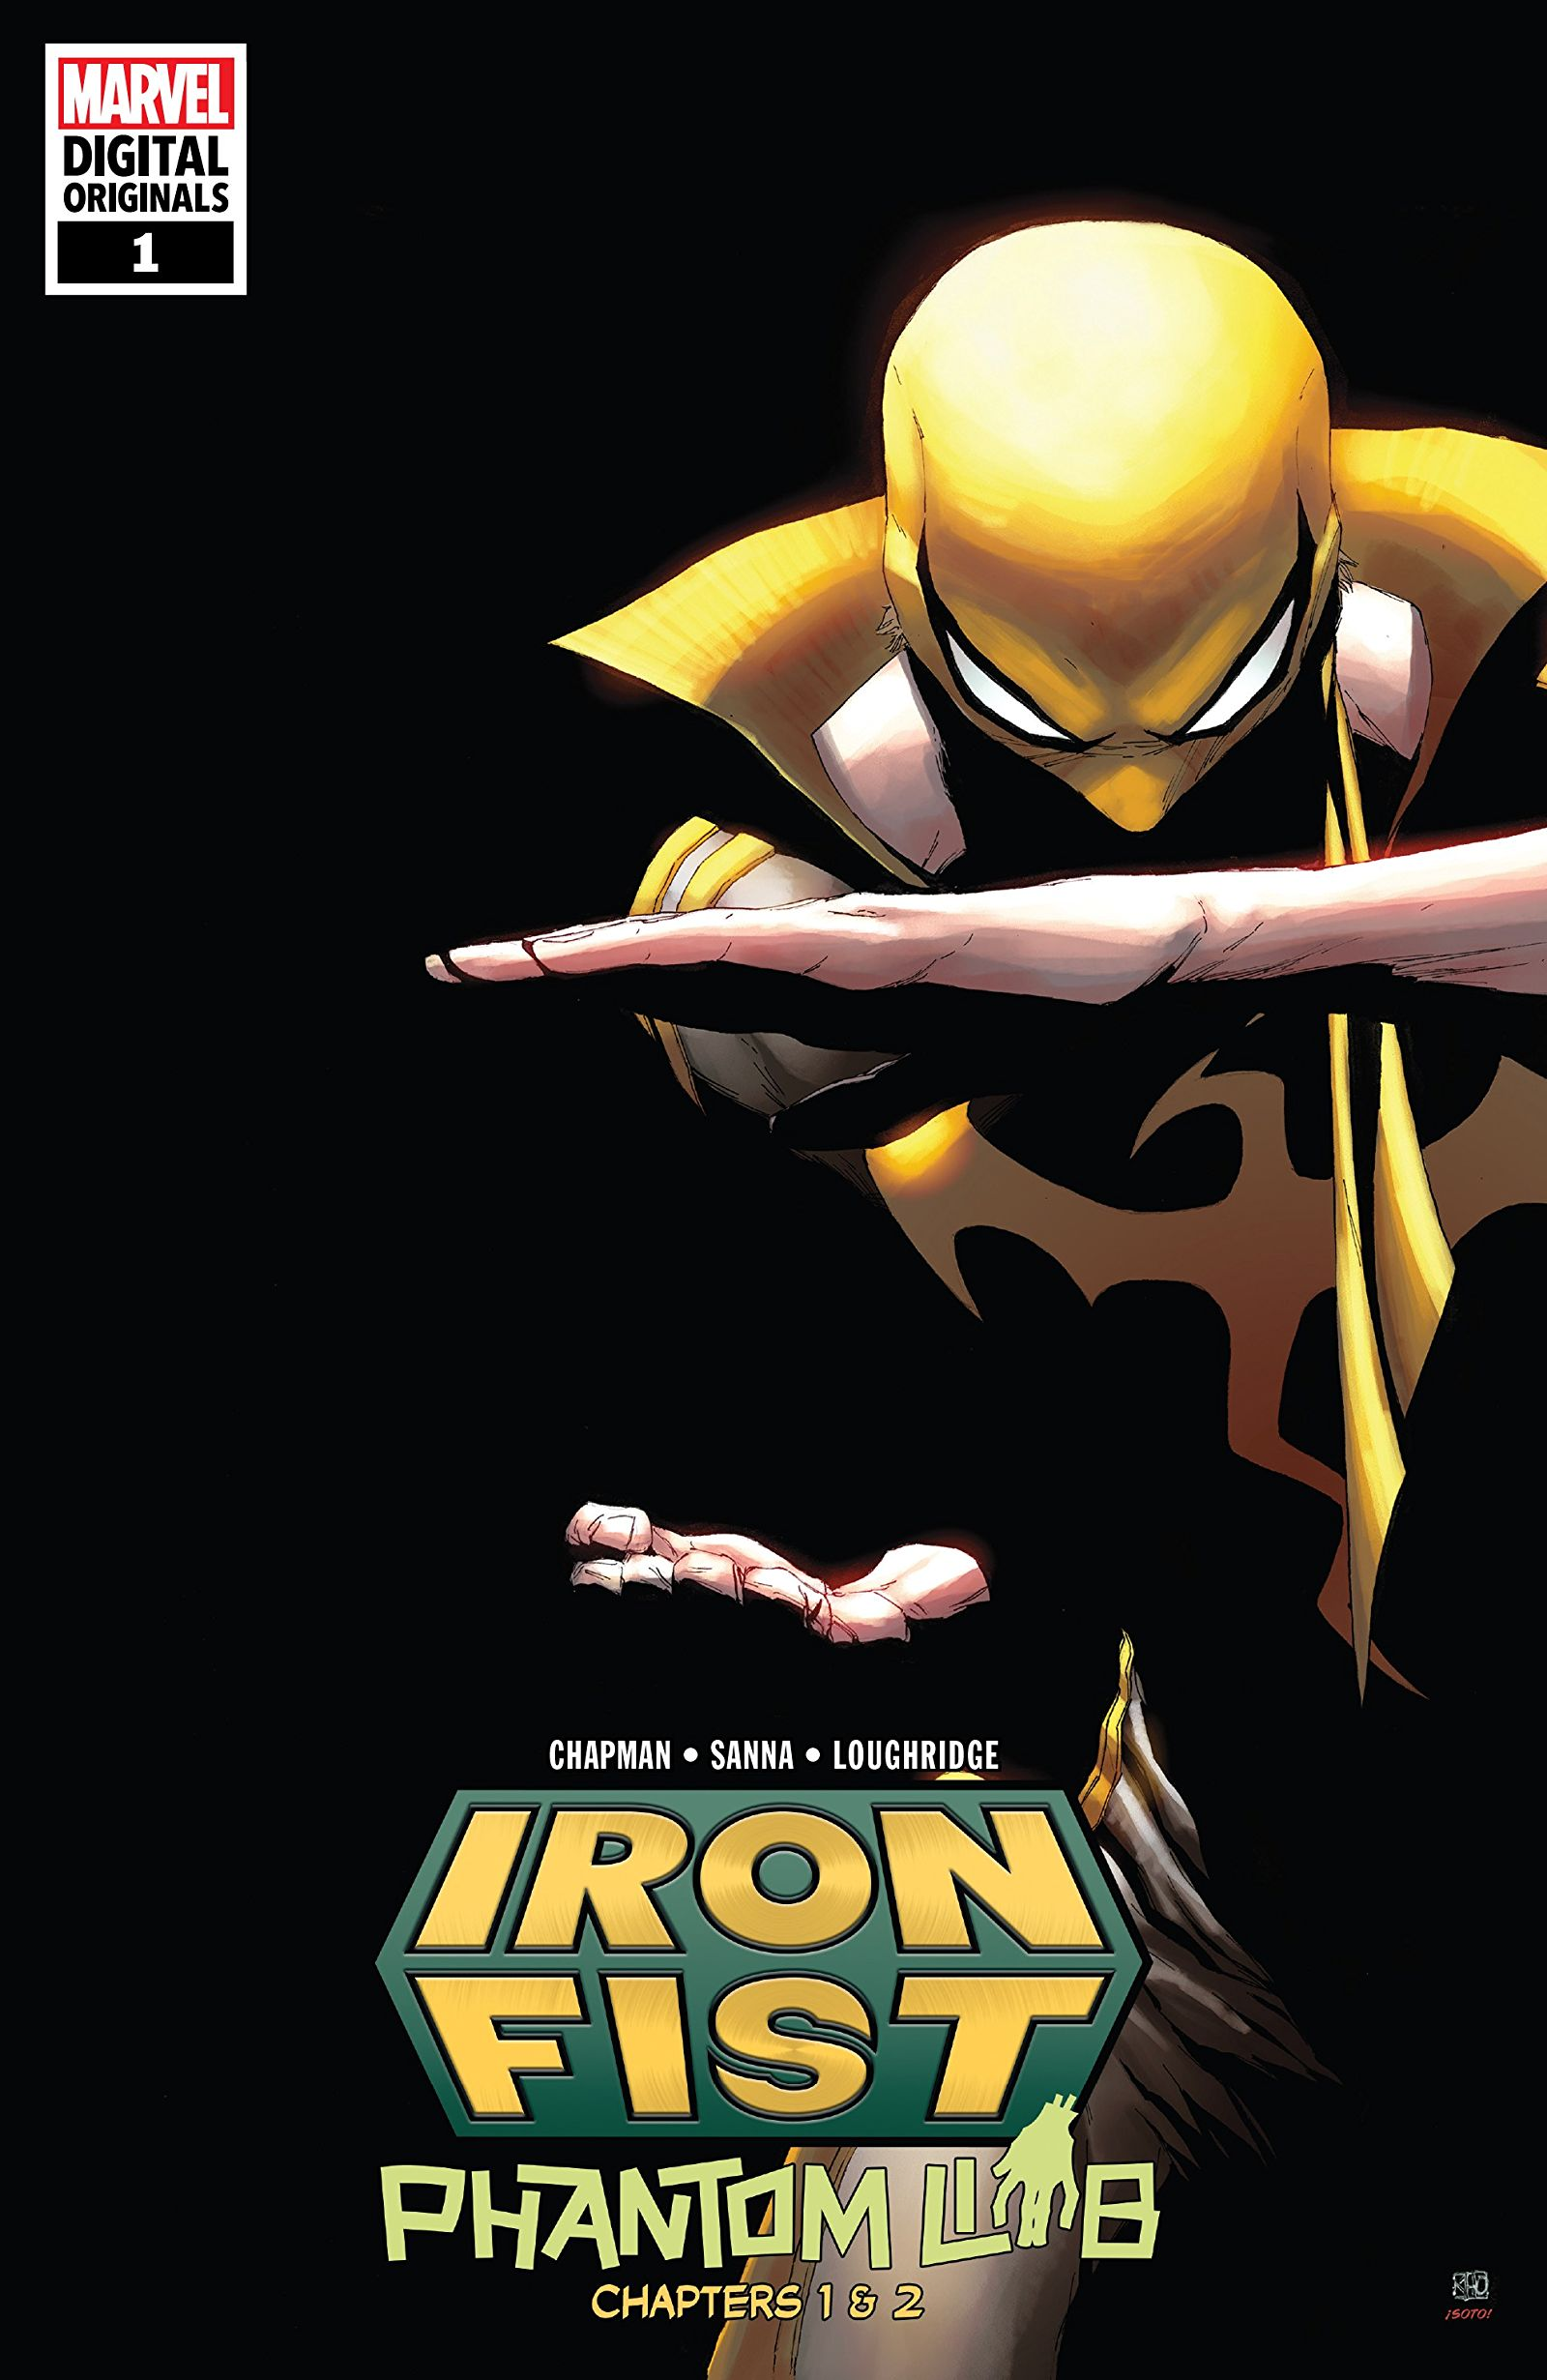 Iron Fist - Marvel Digital Original Vol 1 1